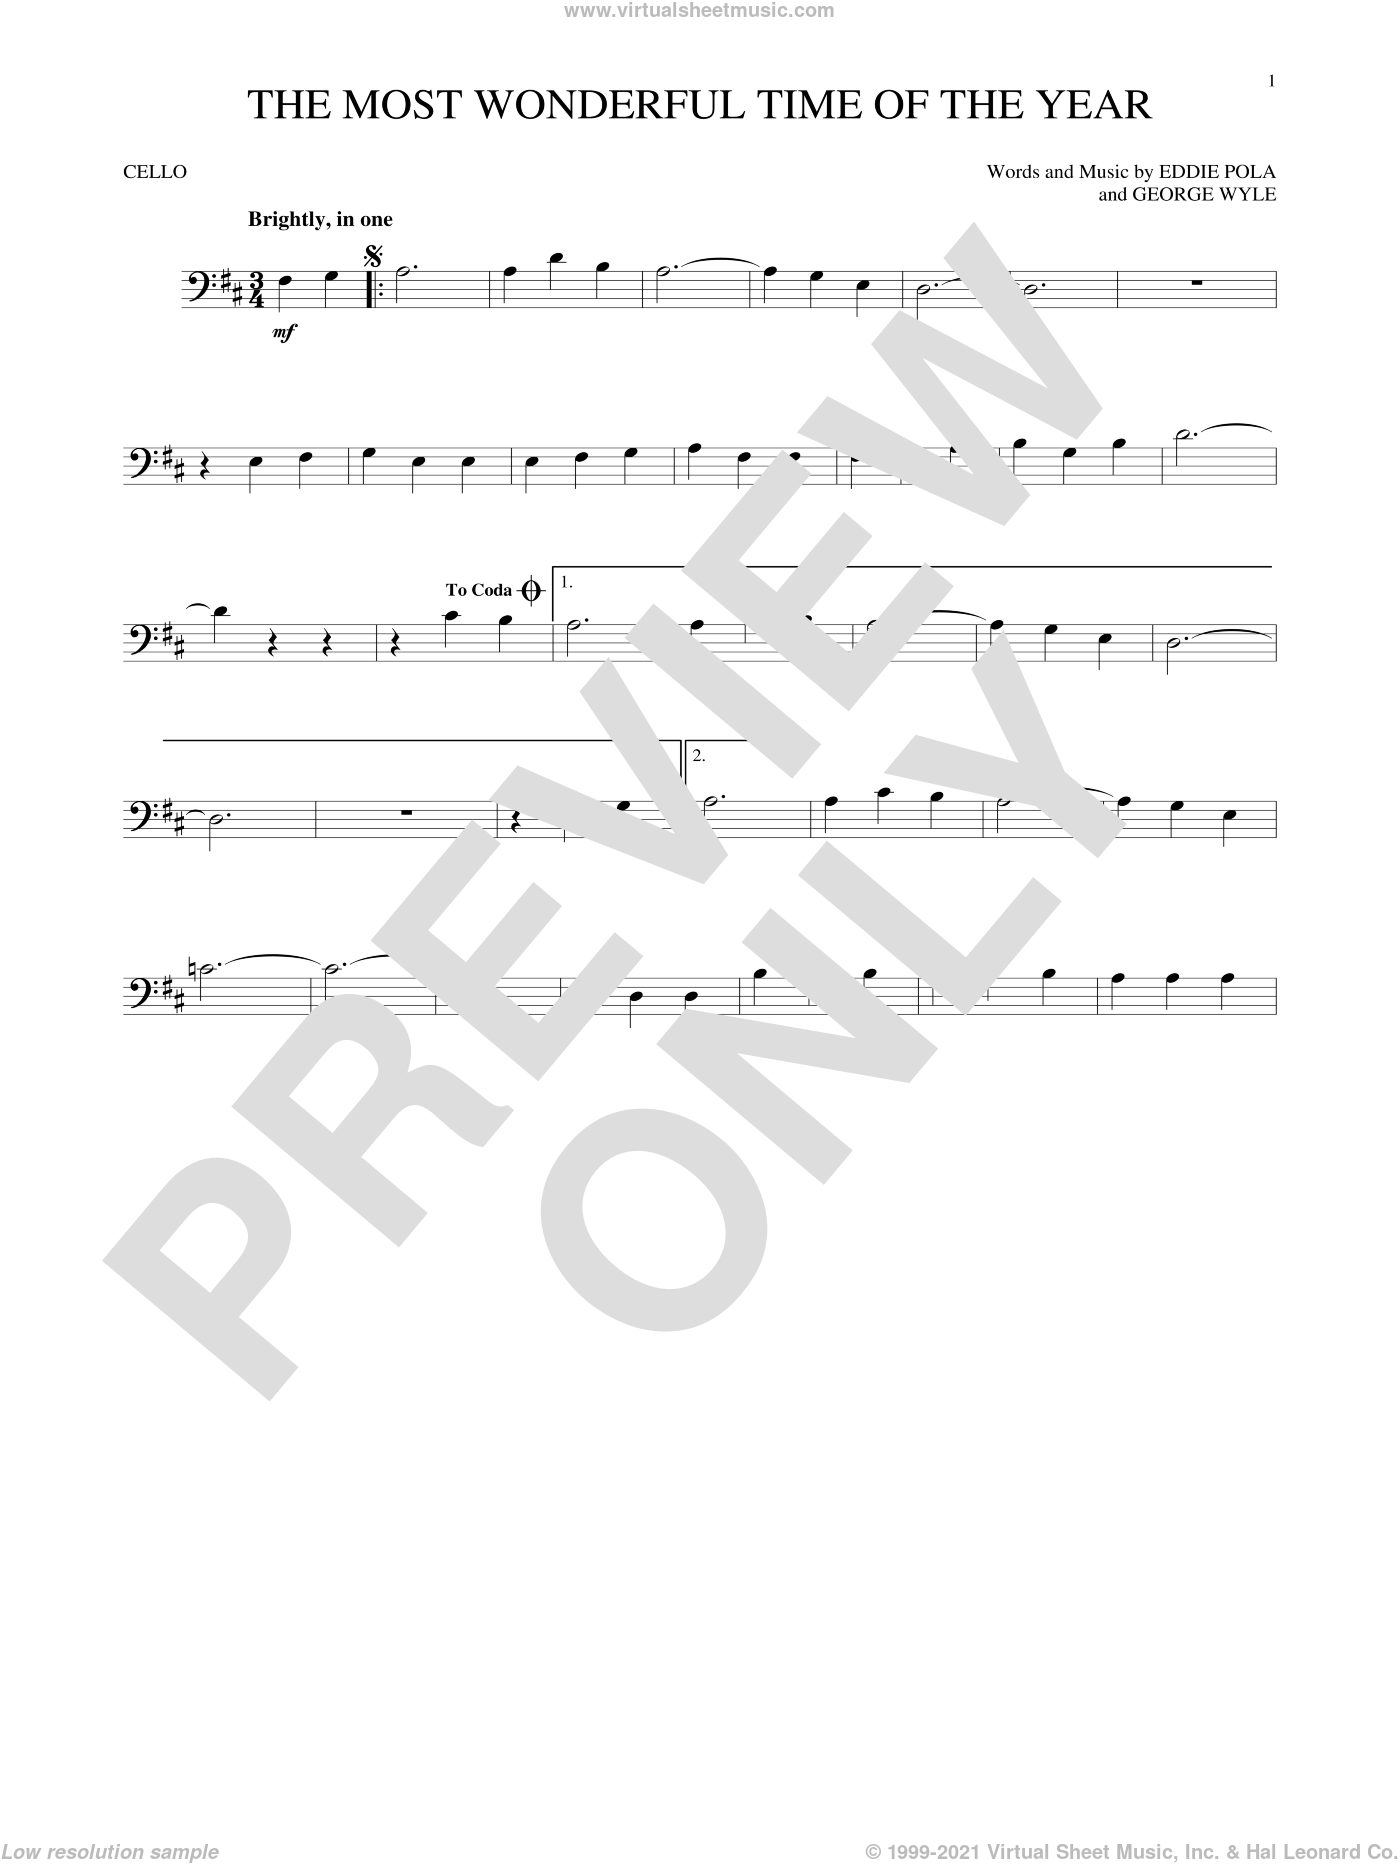 The Most Wonderful Time Of The Year sheet music for cello solo by George Wyle